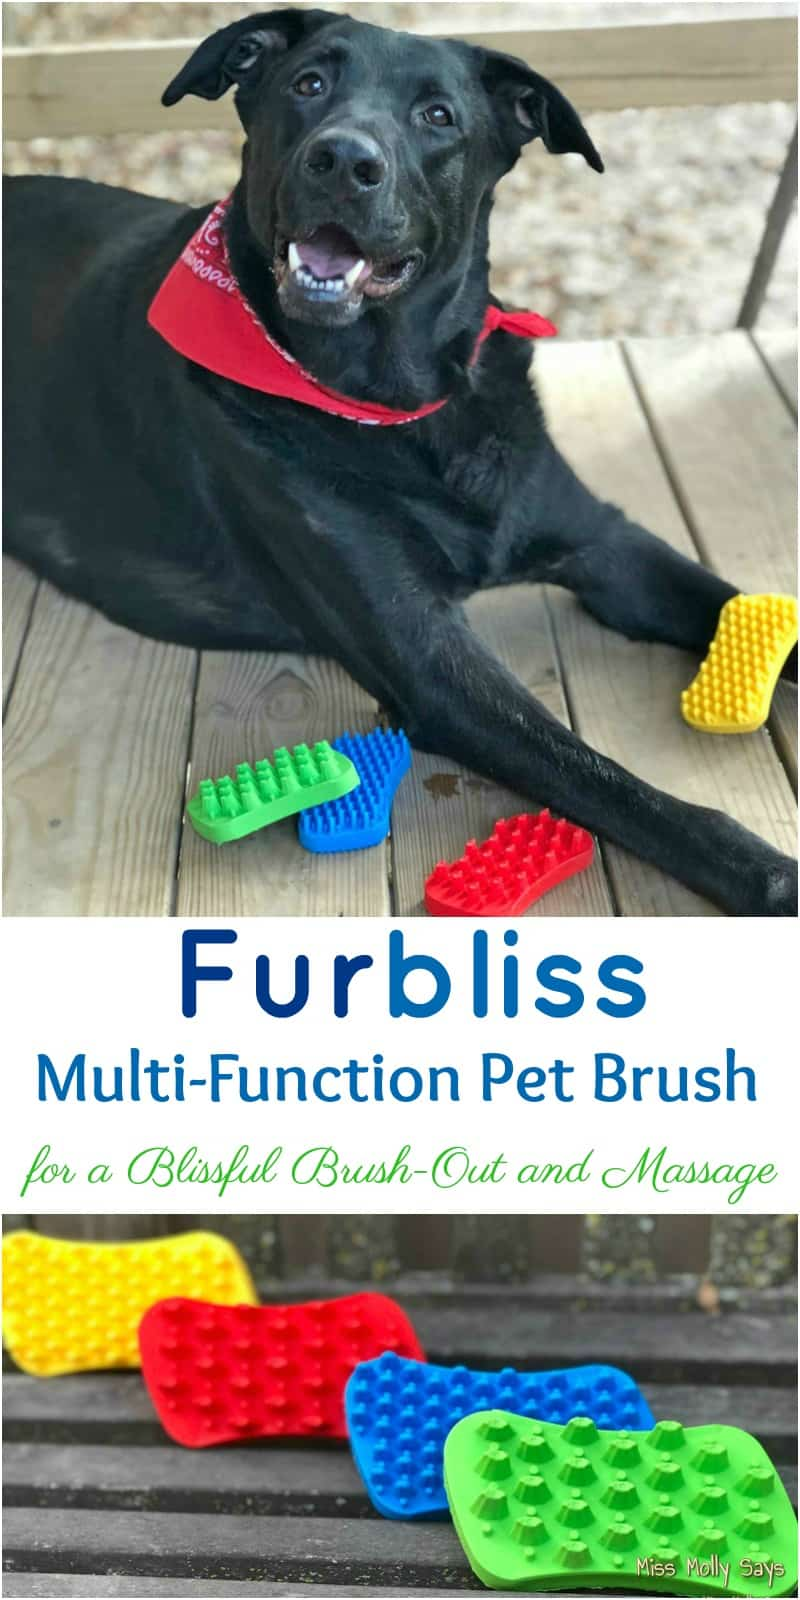 Furbliss Multi-Function Pet Brush for a Blissful Brush-Out and Massage